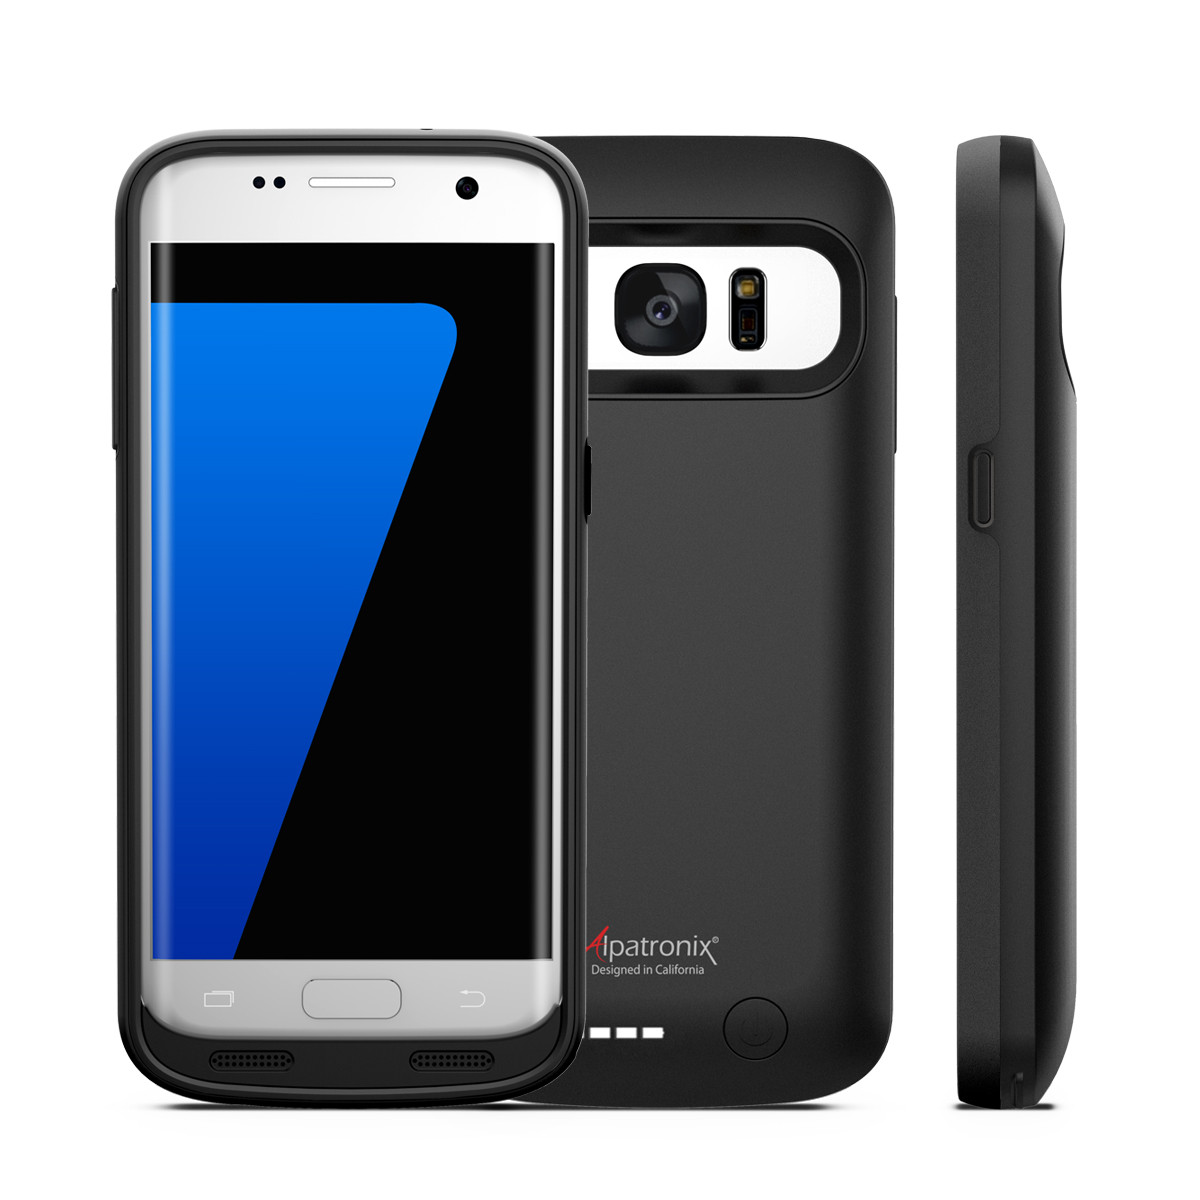 Galaxy S7 Battery Case, Alpatronix BX420 4500mAh Slim External Protective Removable Rechargeable Portable Charging Case for Samsung Galaxy S7 [S7 Charger Case / Android OS 6.0+ Support] - (Black)